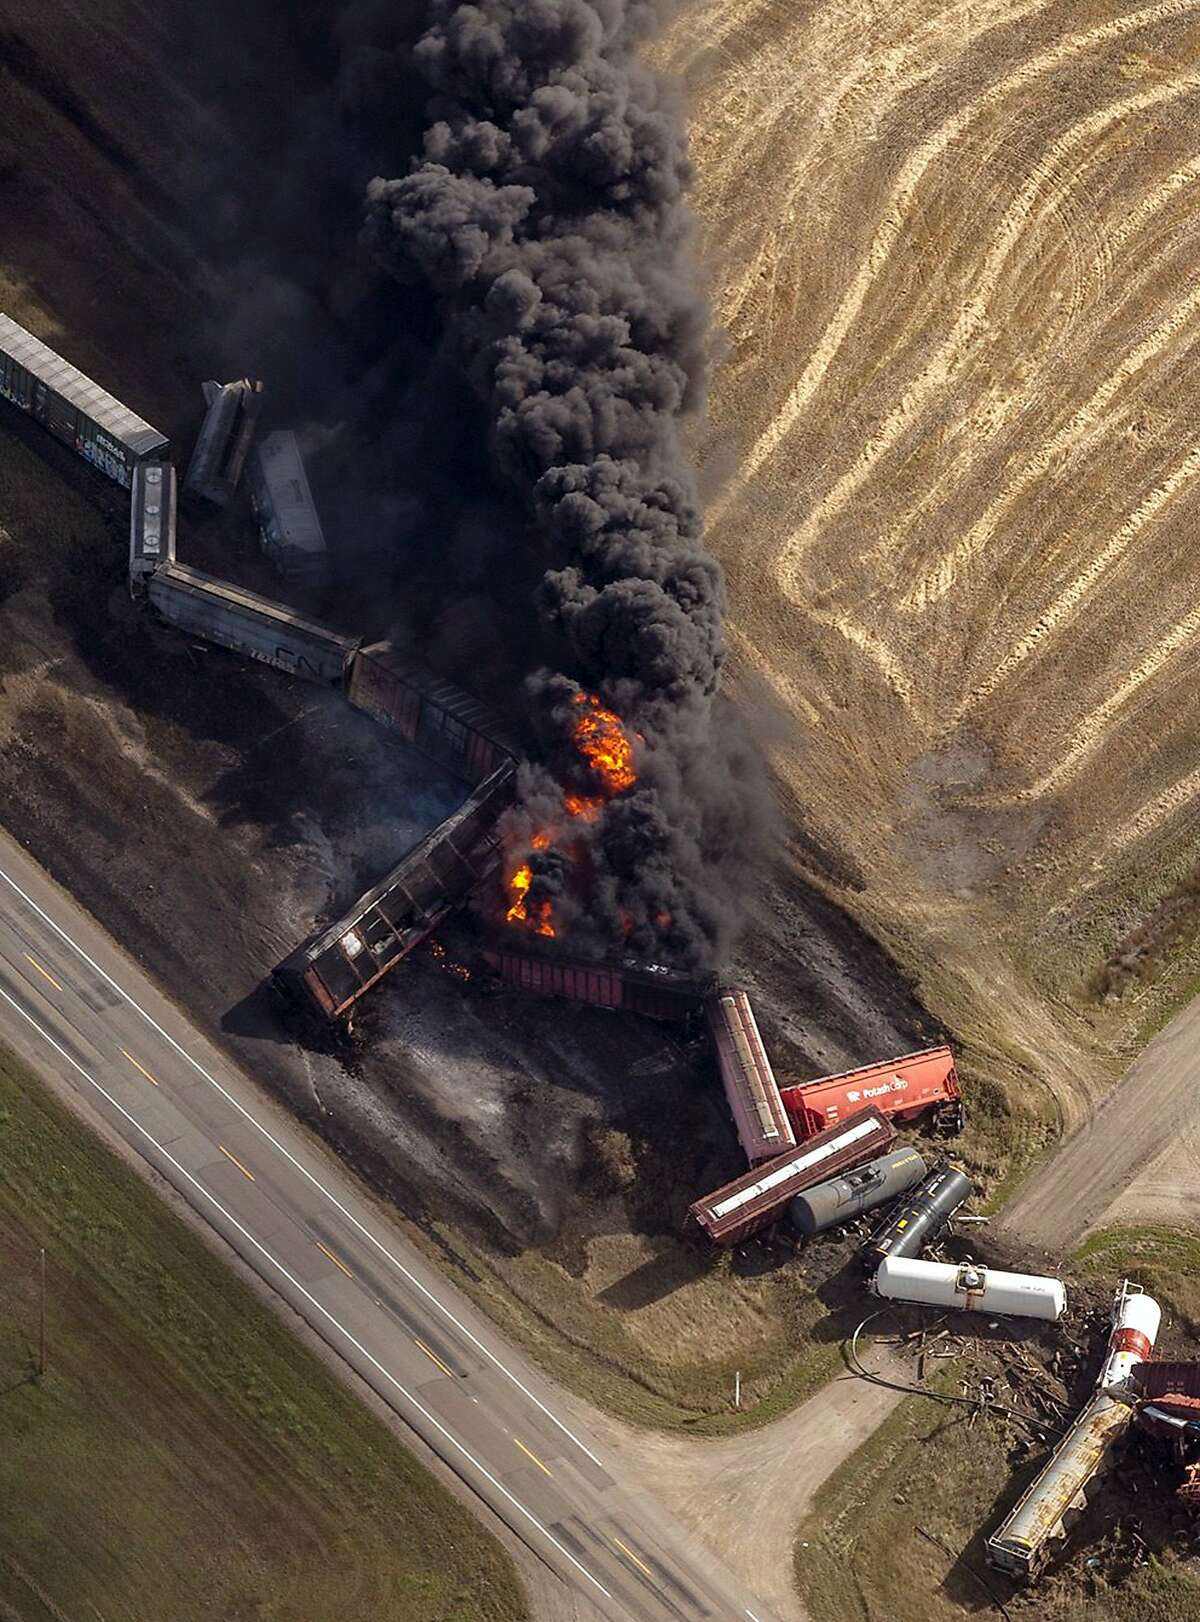 In this aerial photo, a Canadian National Railway Company freight train carrying dangerous goods, derailed and caught fire, burns near the town of Wadena, Saskatchewan, Tuesday, Oct. 7, 2014. The Saskatchewan government said the derailment happened near the small community of Clair, about 13 miles west of Wadena, which is being evacuated. (AP Photo/The Canadian Press, Liam Richards)